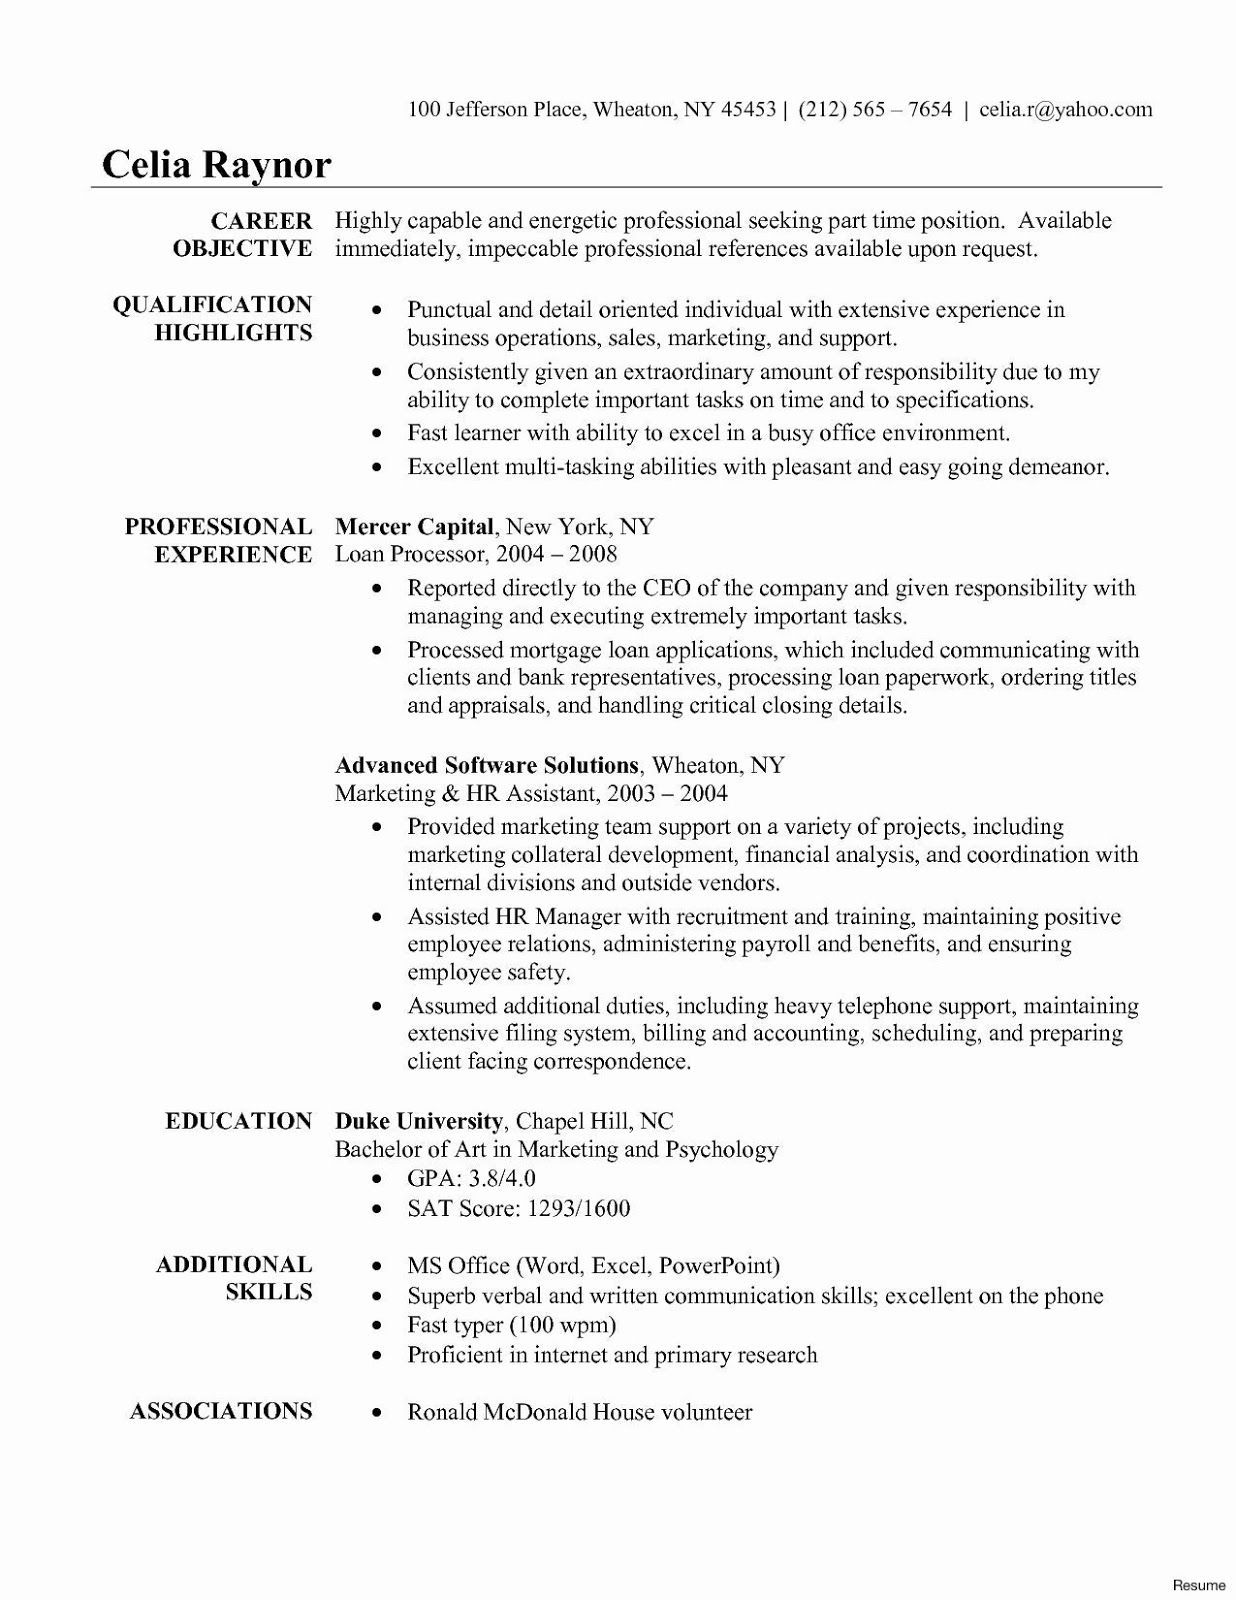 Bank Resume Template Download Bank Resume Template For Freshers World Bank Resume Te Administrative Assistant Resume Resume Objective Examples Resume Objective